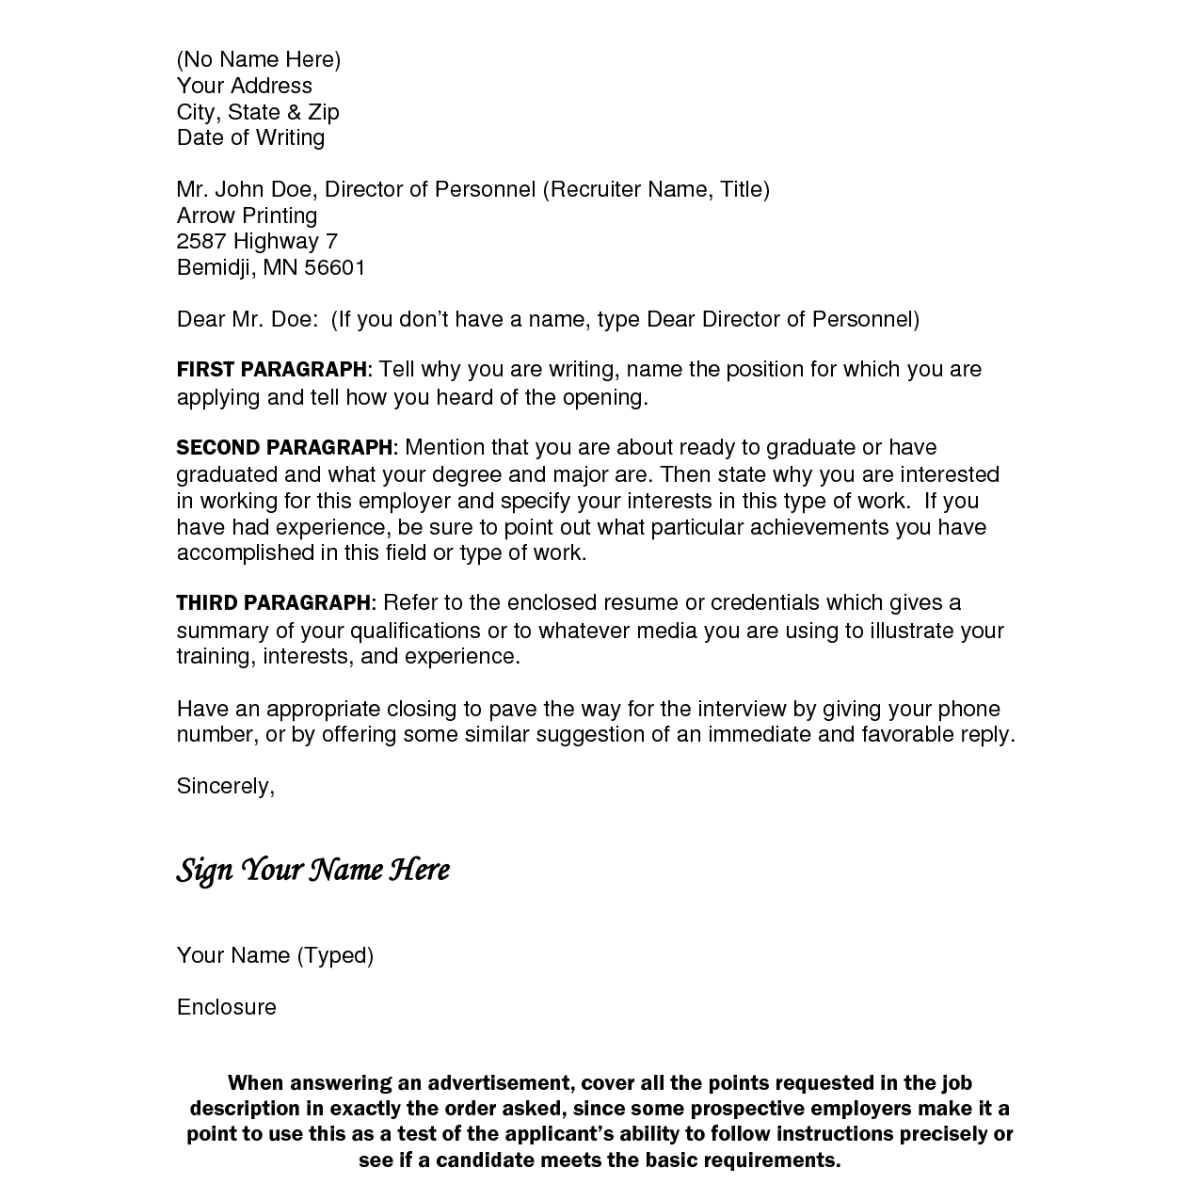 cover letter dont know name